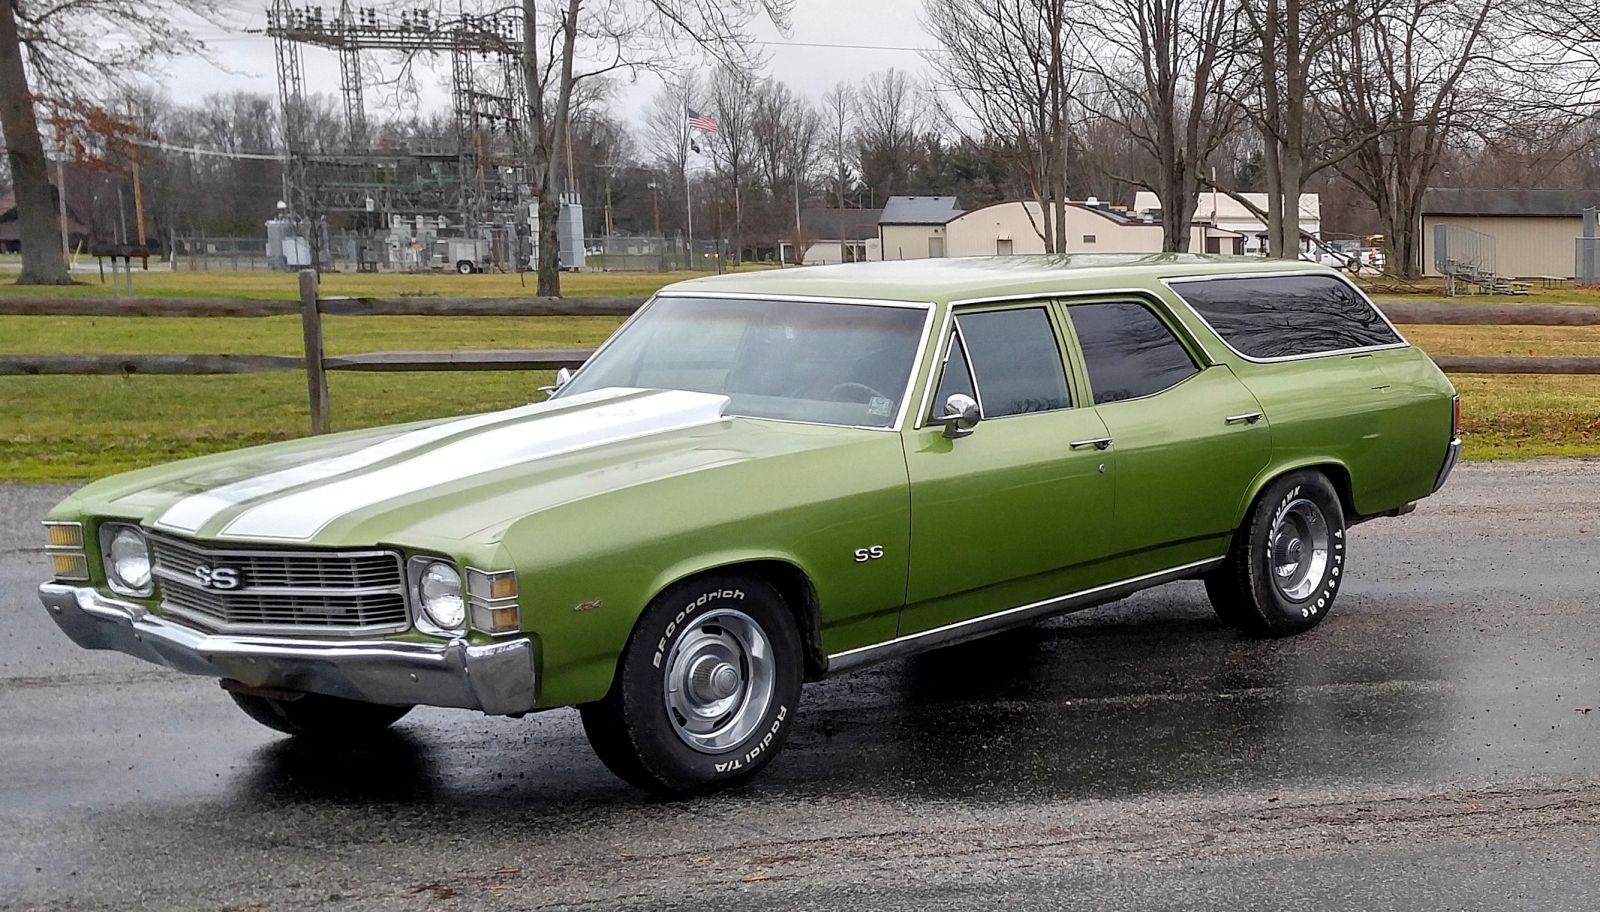 Wrecked Cars For Sale >> 71 Chevelle Concours Station Wagon 307ci 3 speed auto trans - Cleveland Power & Performance